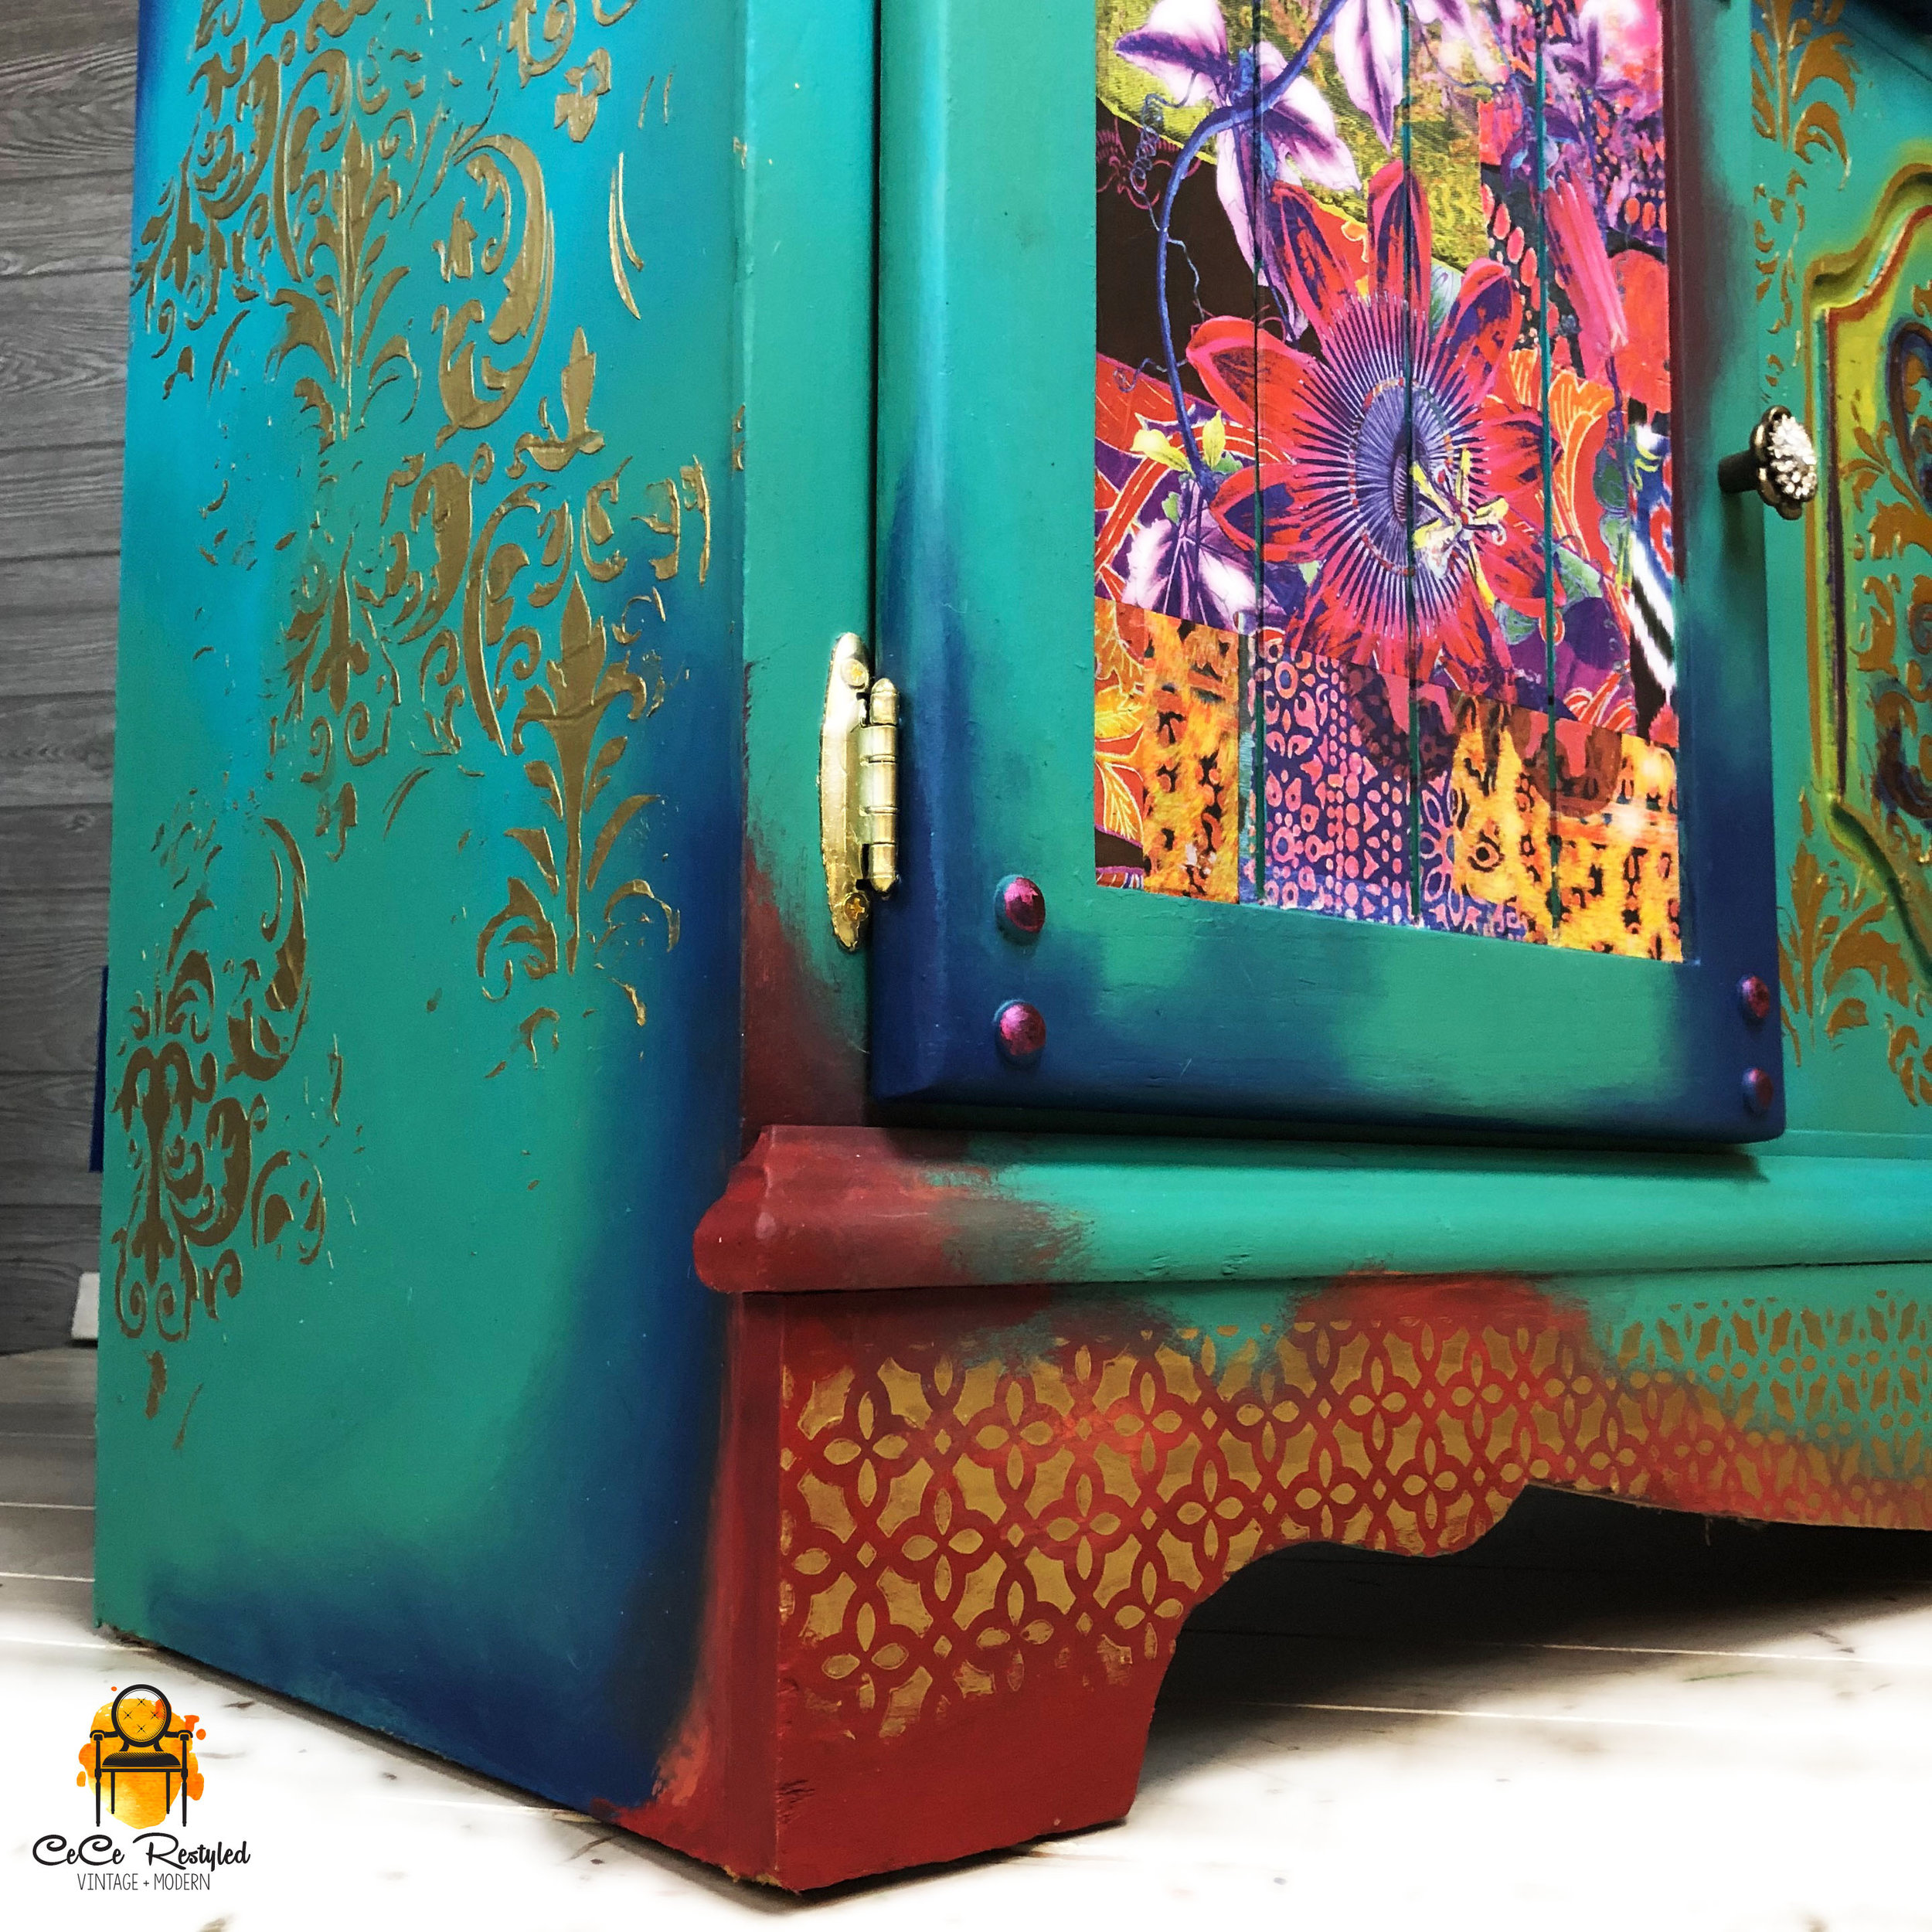 The drawers have decoupaged elephants peeking out from the corners and on the doors I used a colorful Boho Decor Transfer called Patchwork. The new hardware adds even more sparkle to this bright statement piece!